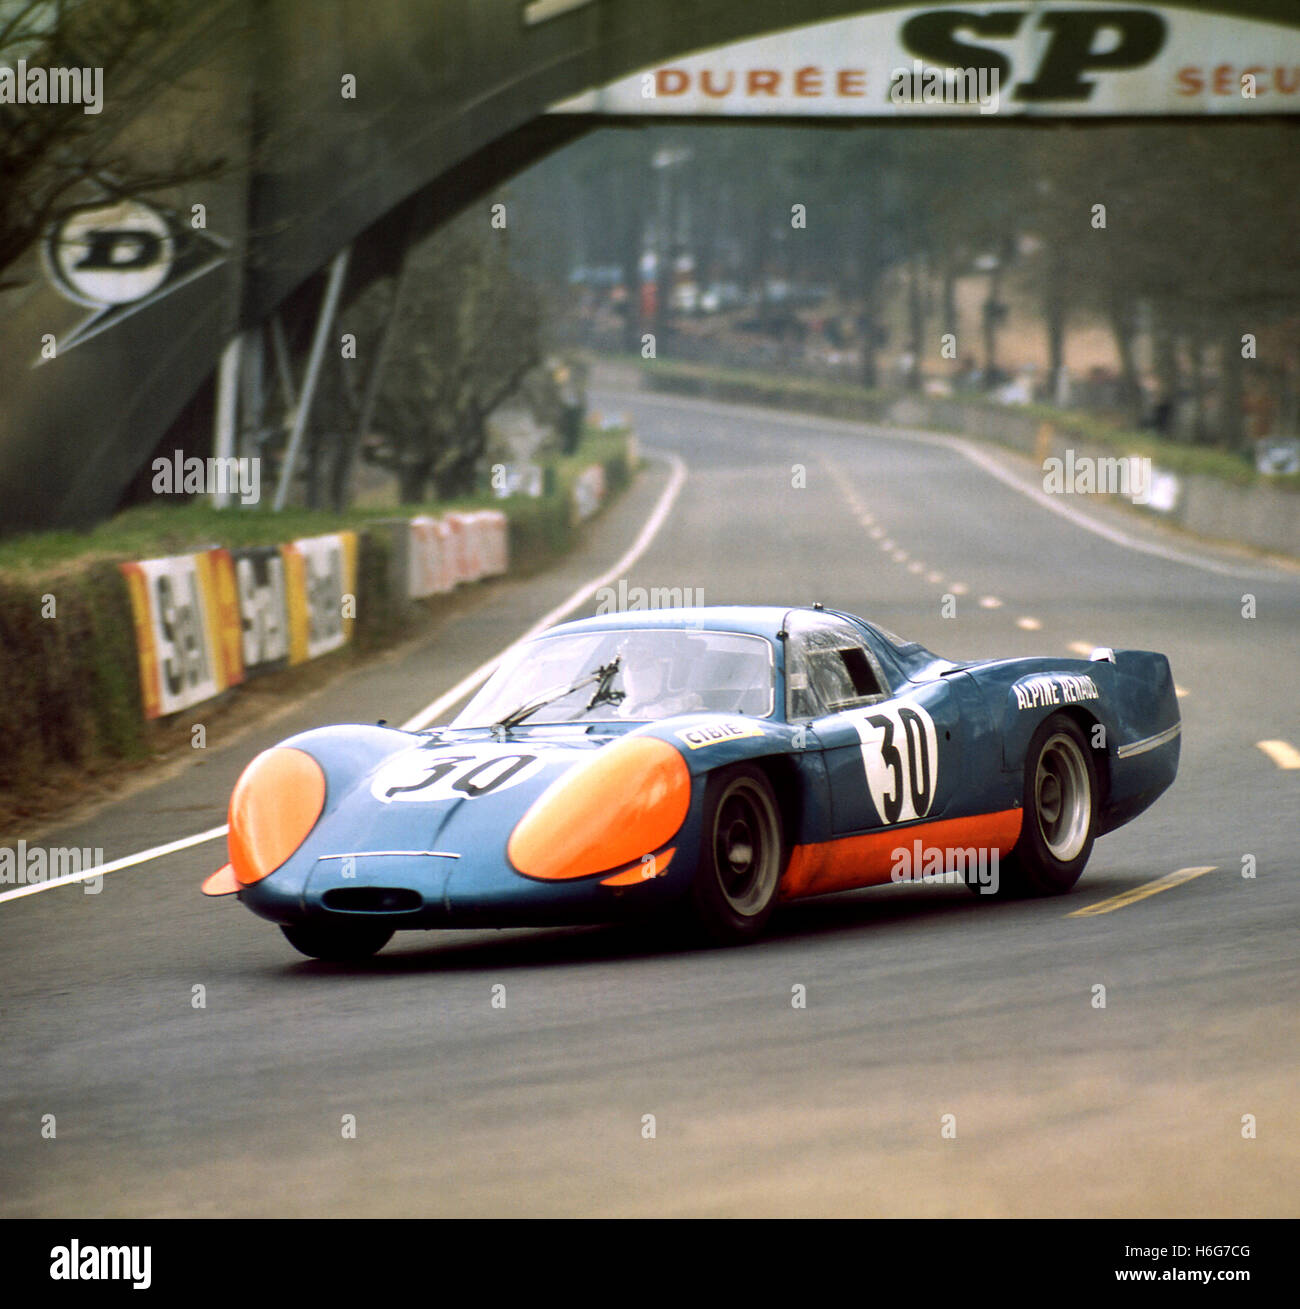 LE MANS TEST WEEKEND ALPINE-RENAULT NO 30 1969 - Stock Image